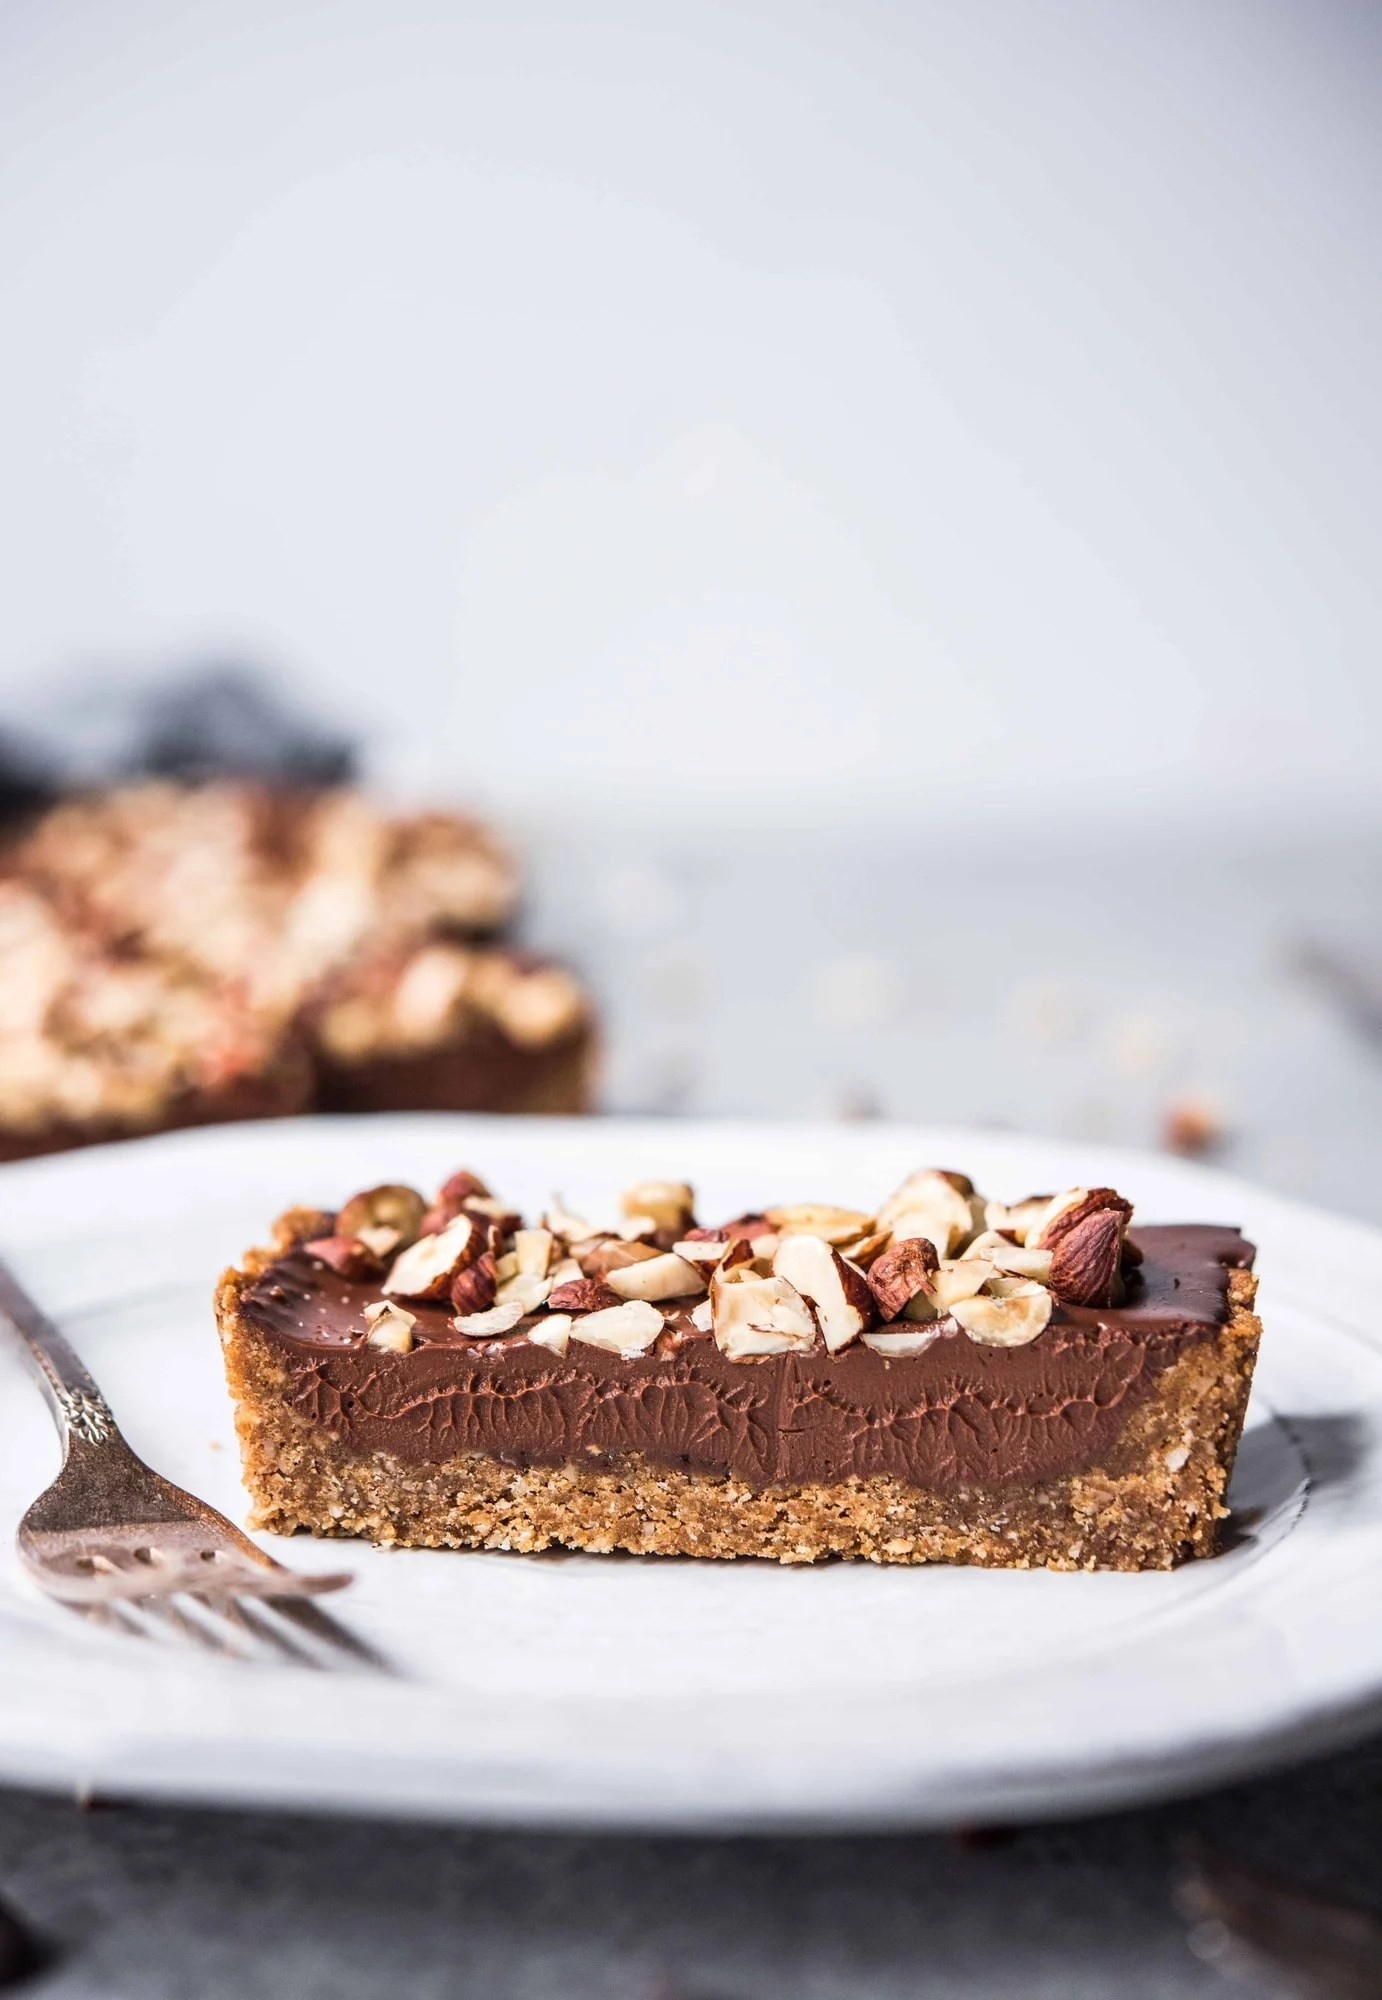 Side view of slice of chocolate hazelnut ganache tart on a white plate with fork